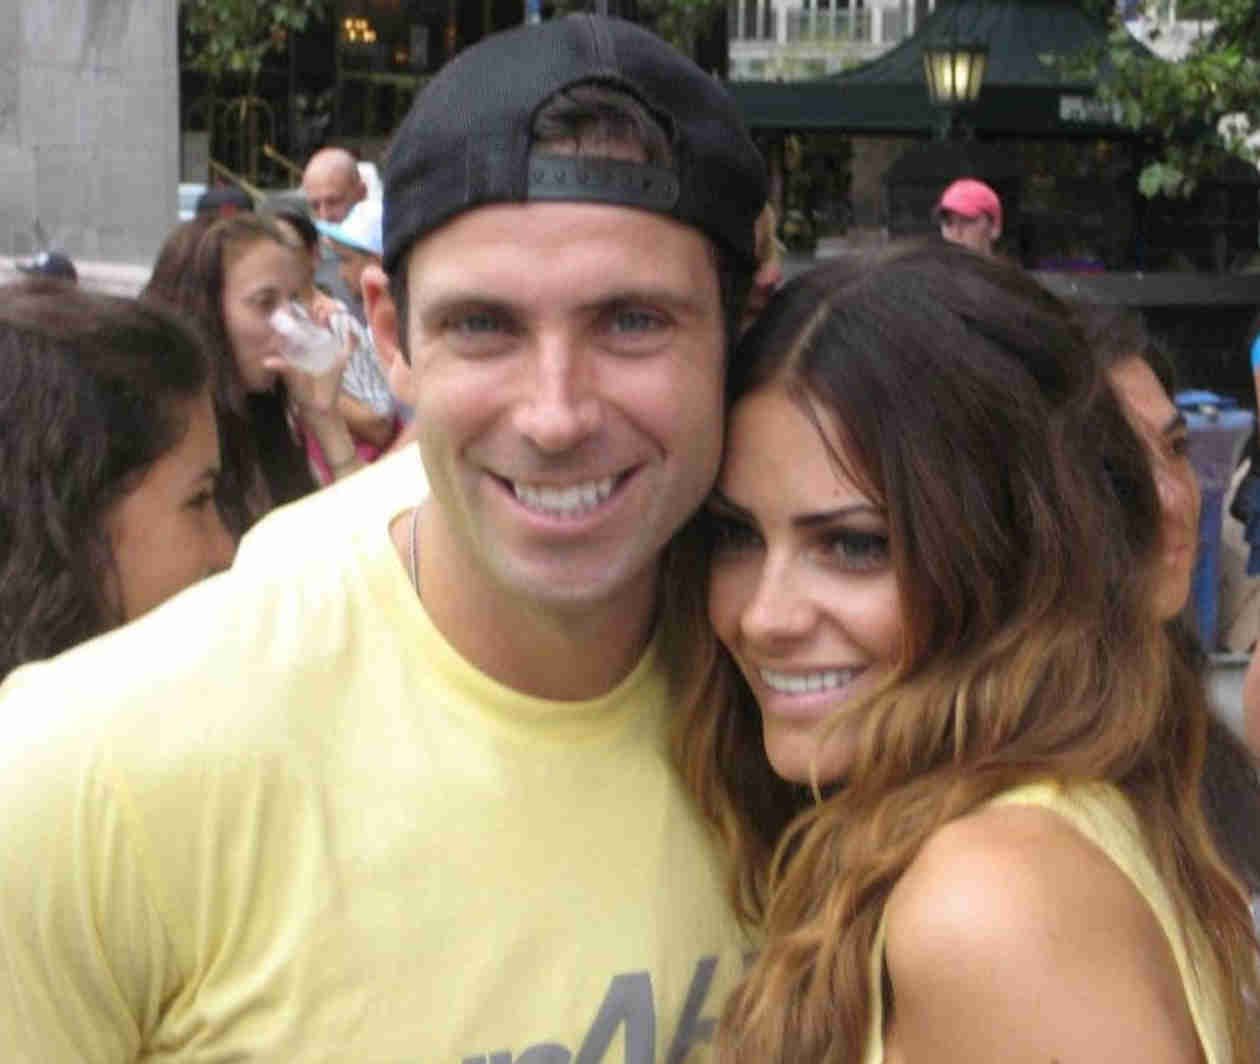 Bachelor in Paradise Spoilers: Do Michelle Money and Graham Bunn Hook Up?